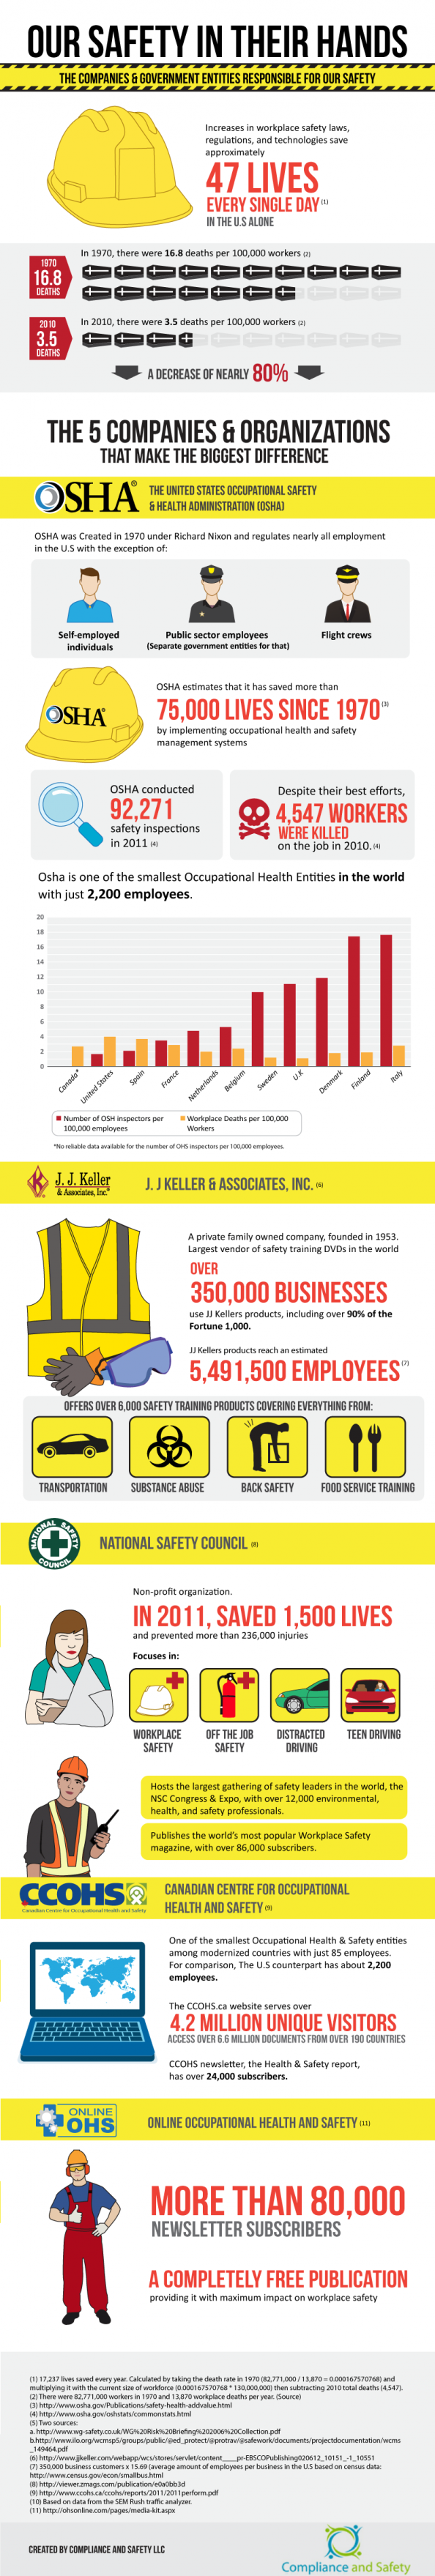 Our Safety in Their Hands Infographic